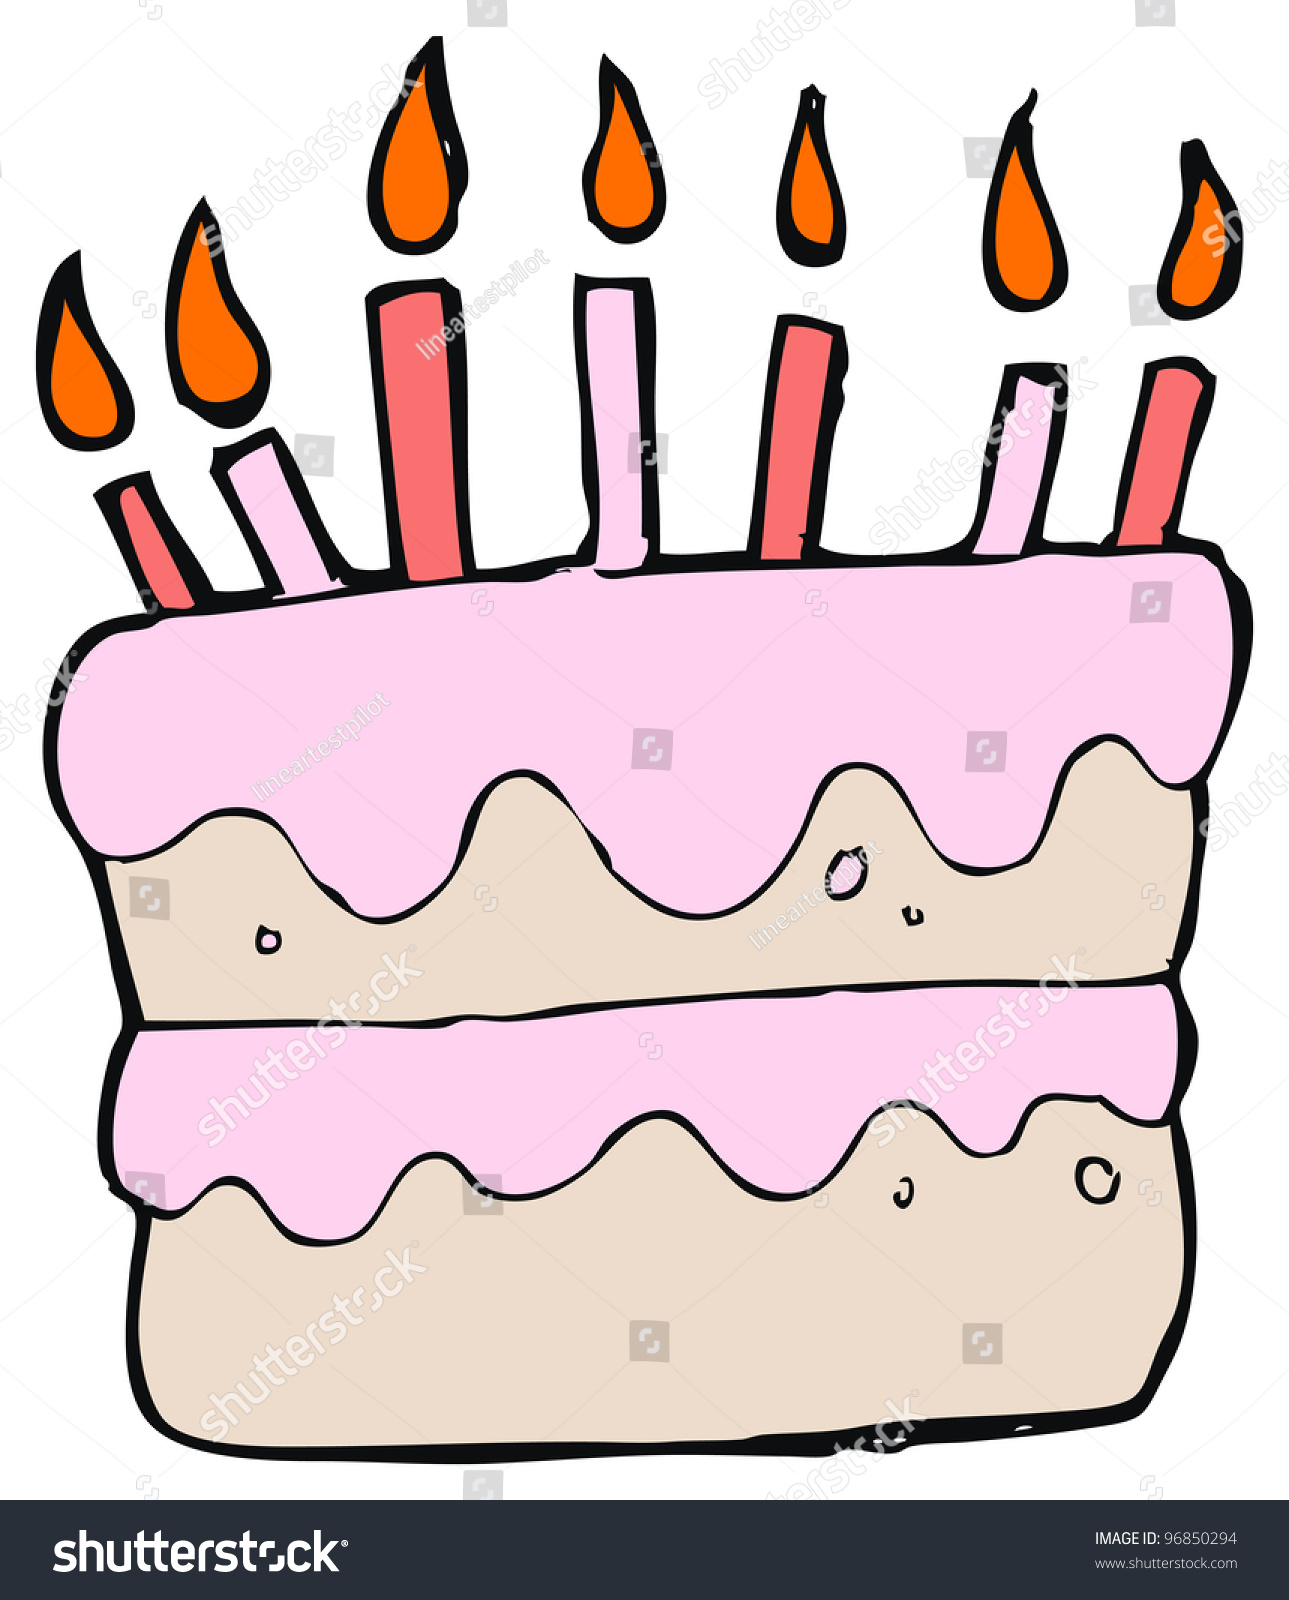 Childs Drawing Birthday Cake Stock Illustration 96850294 Shutterstock